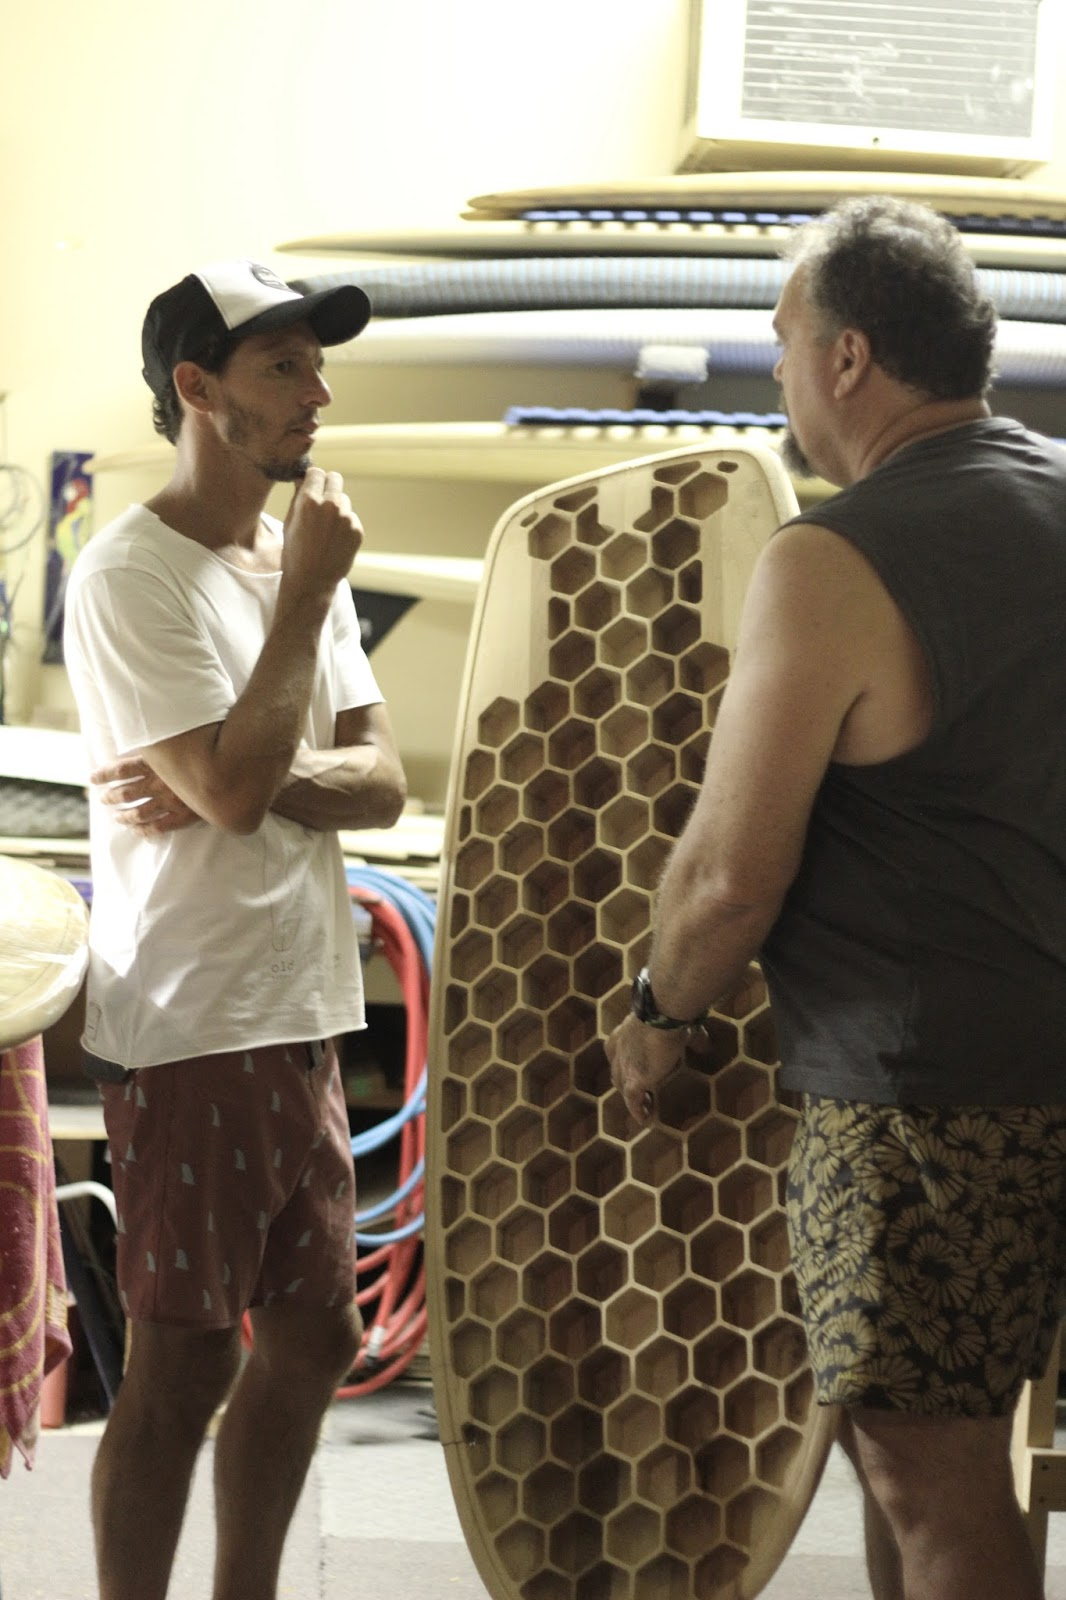 20-03-2016-australia-siebert-surfboards-12